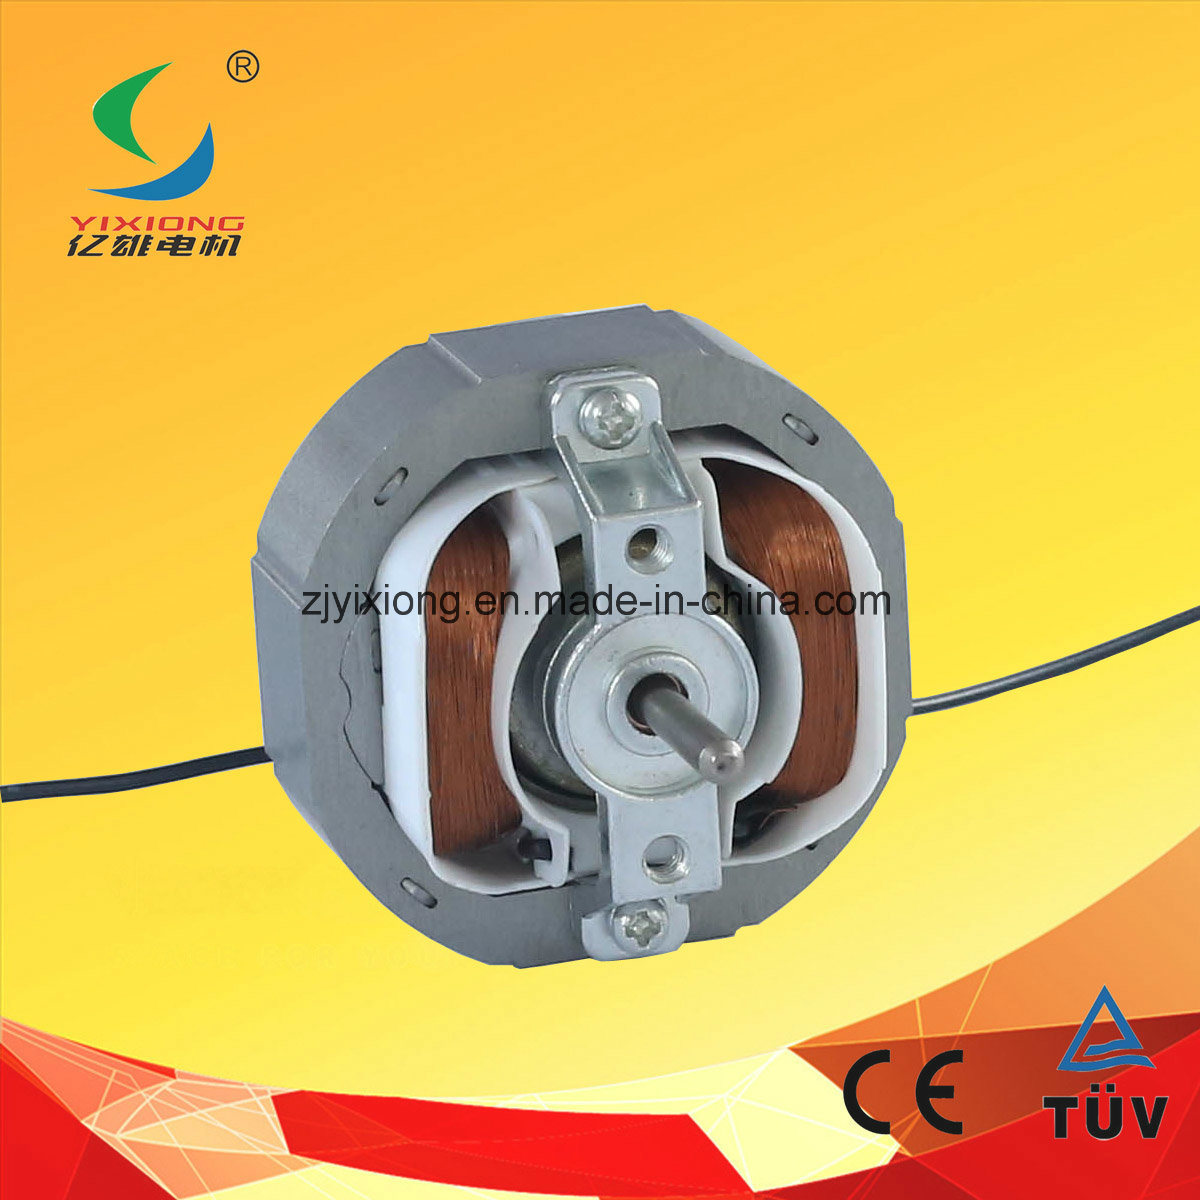 China Single Phase Ac Motor 230v 50hz With Copper Wire Wiring